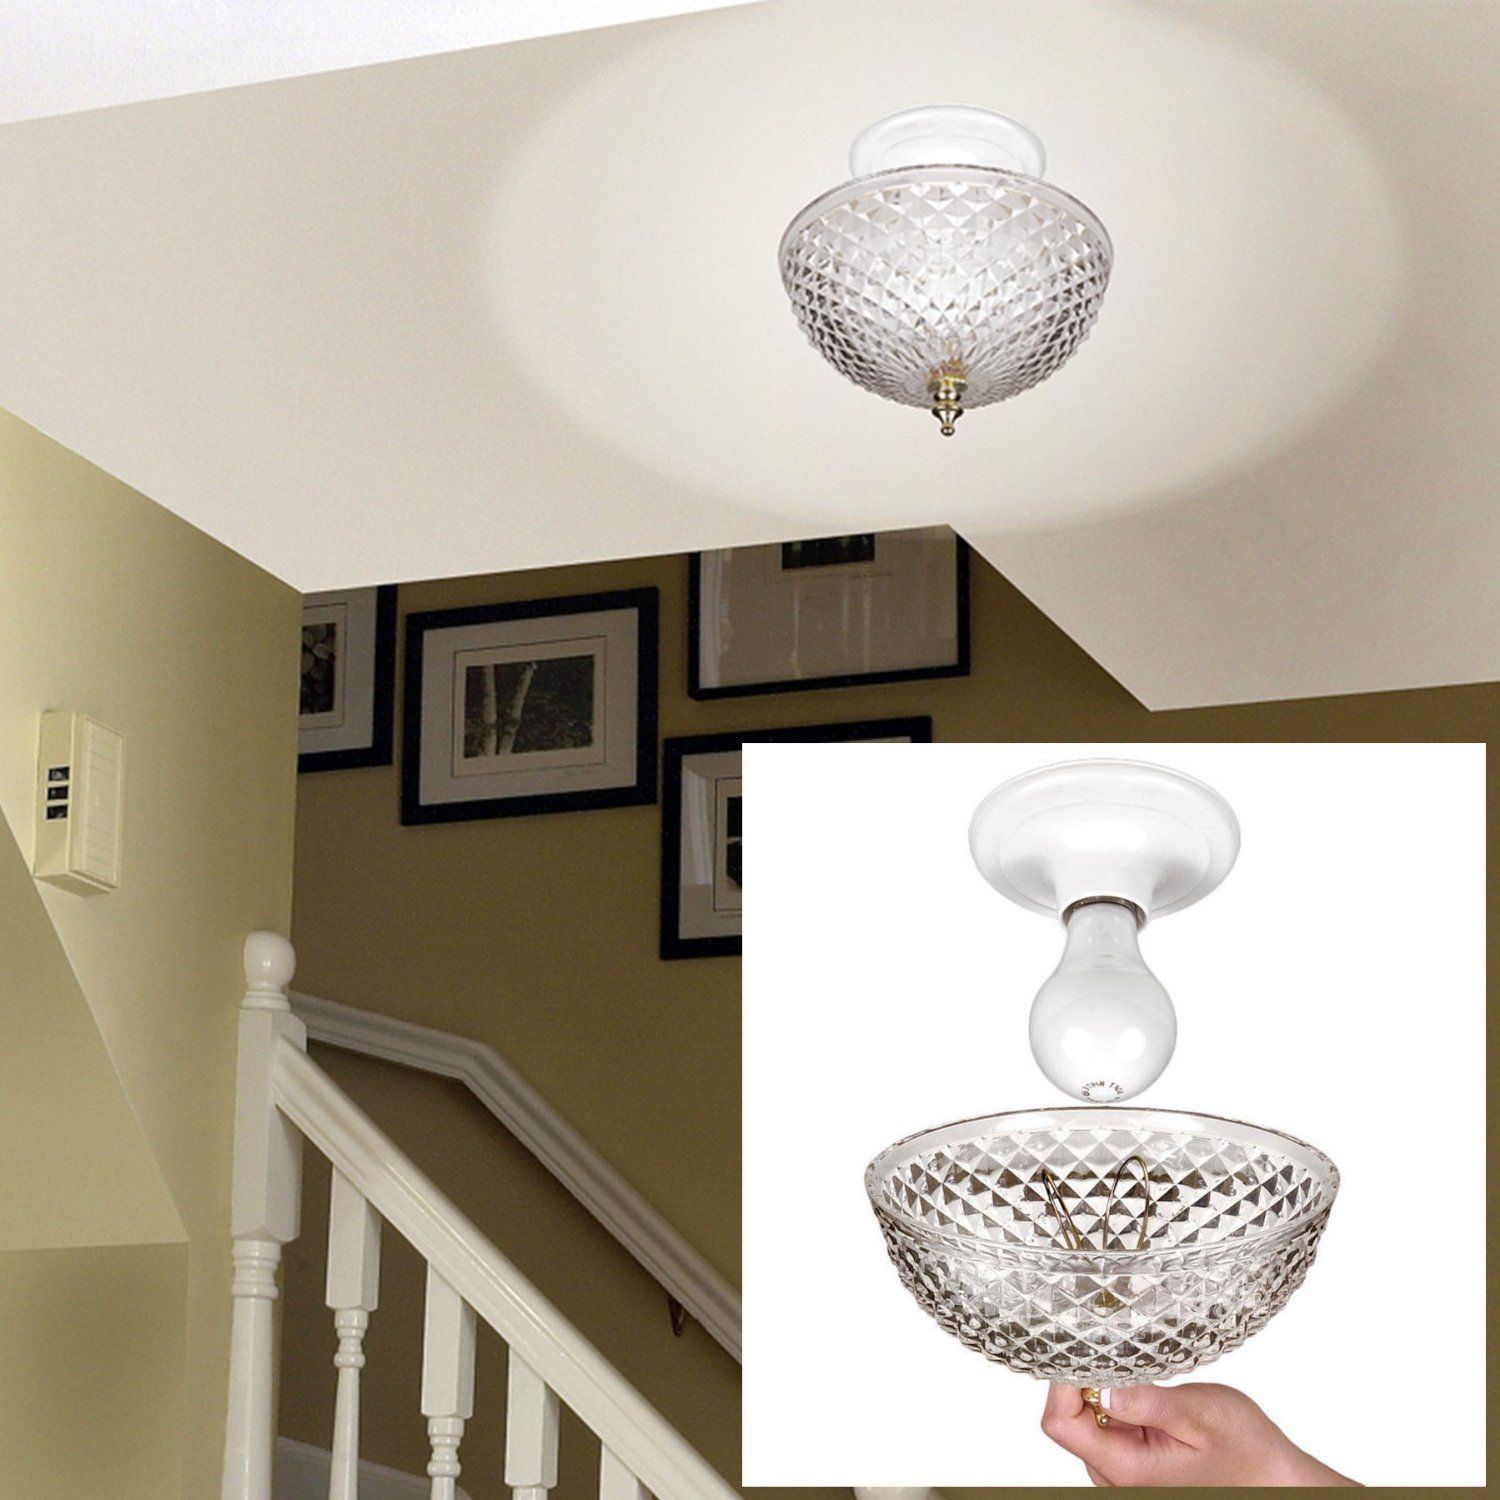 Clip-on Light Shade - Diamond Cut Acrylic Dome Lightbulb Fixture ... for Diy Acrylic Lamp  34eri